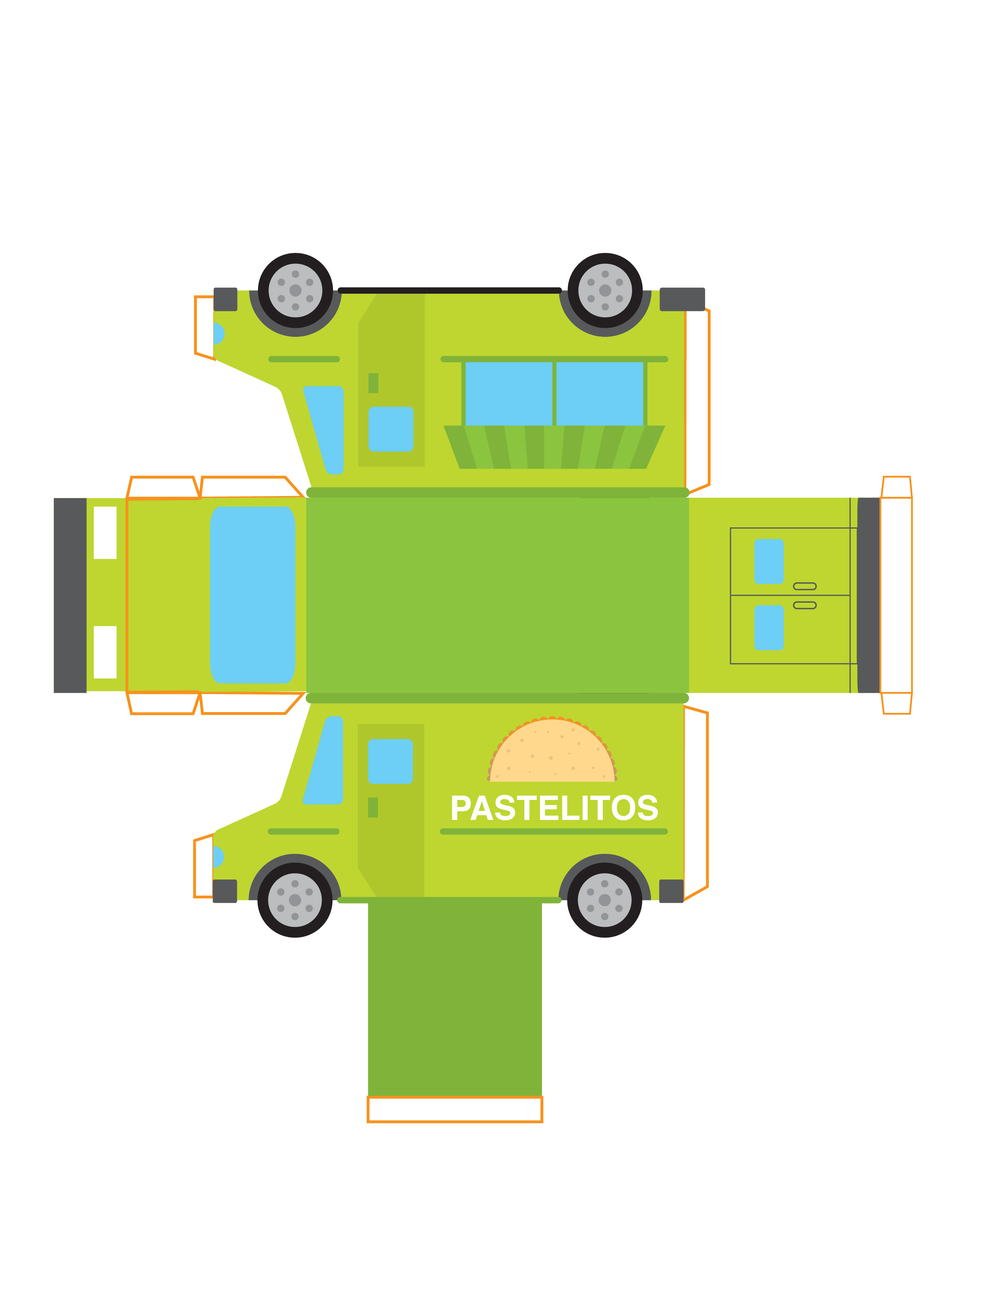 Food Truck Print Outs-02.jpg